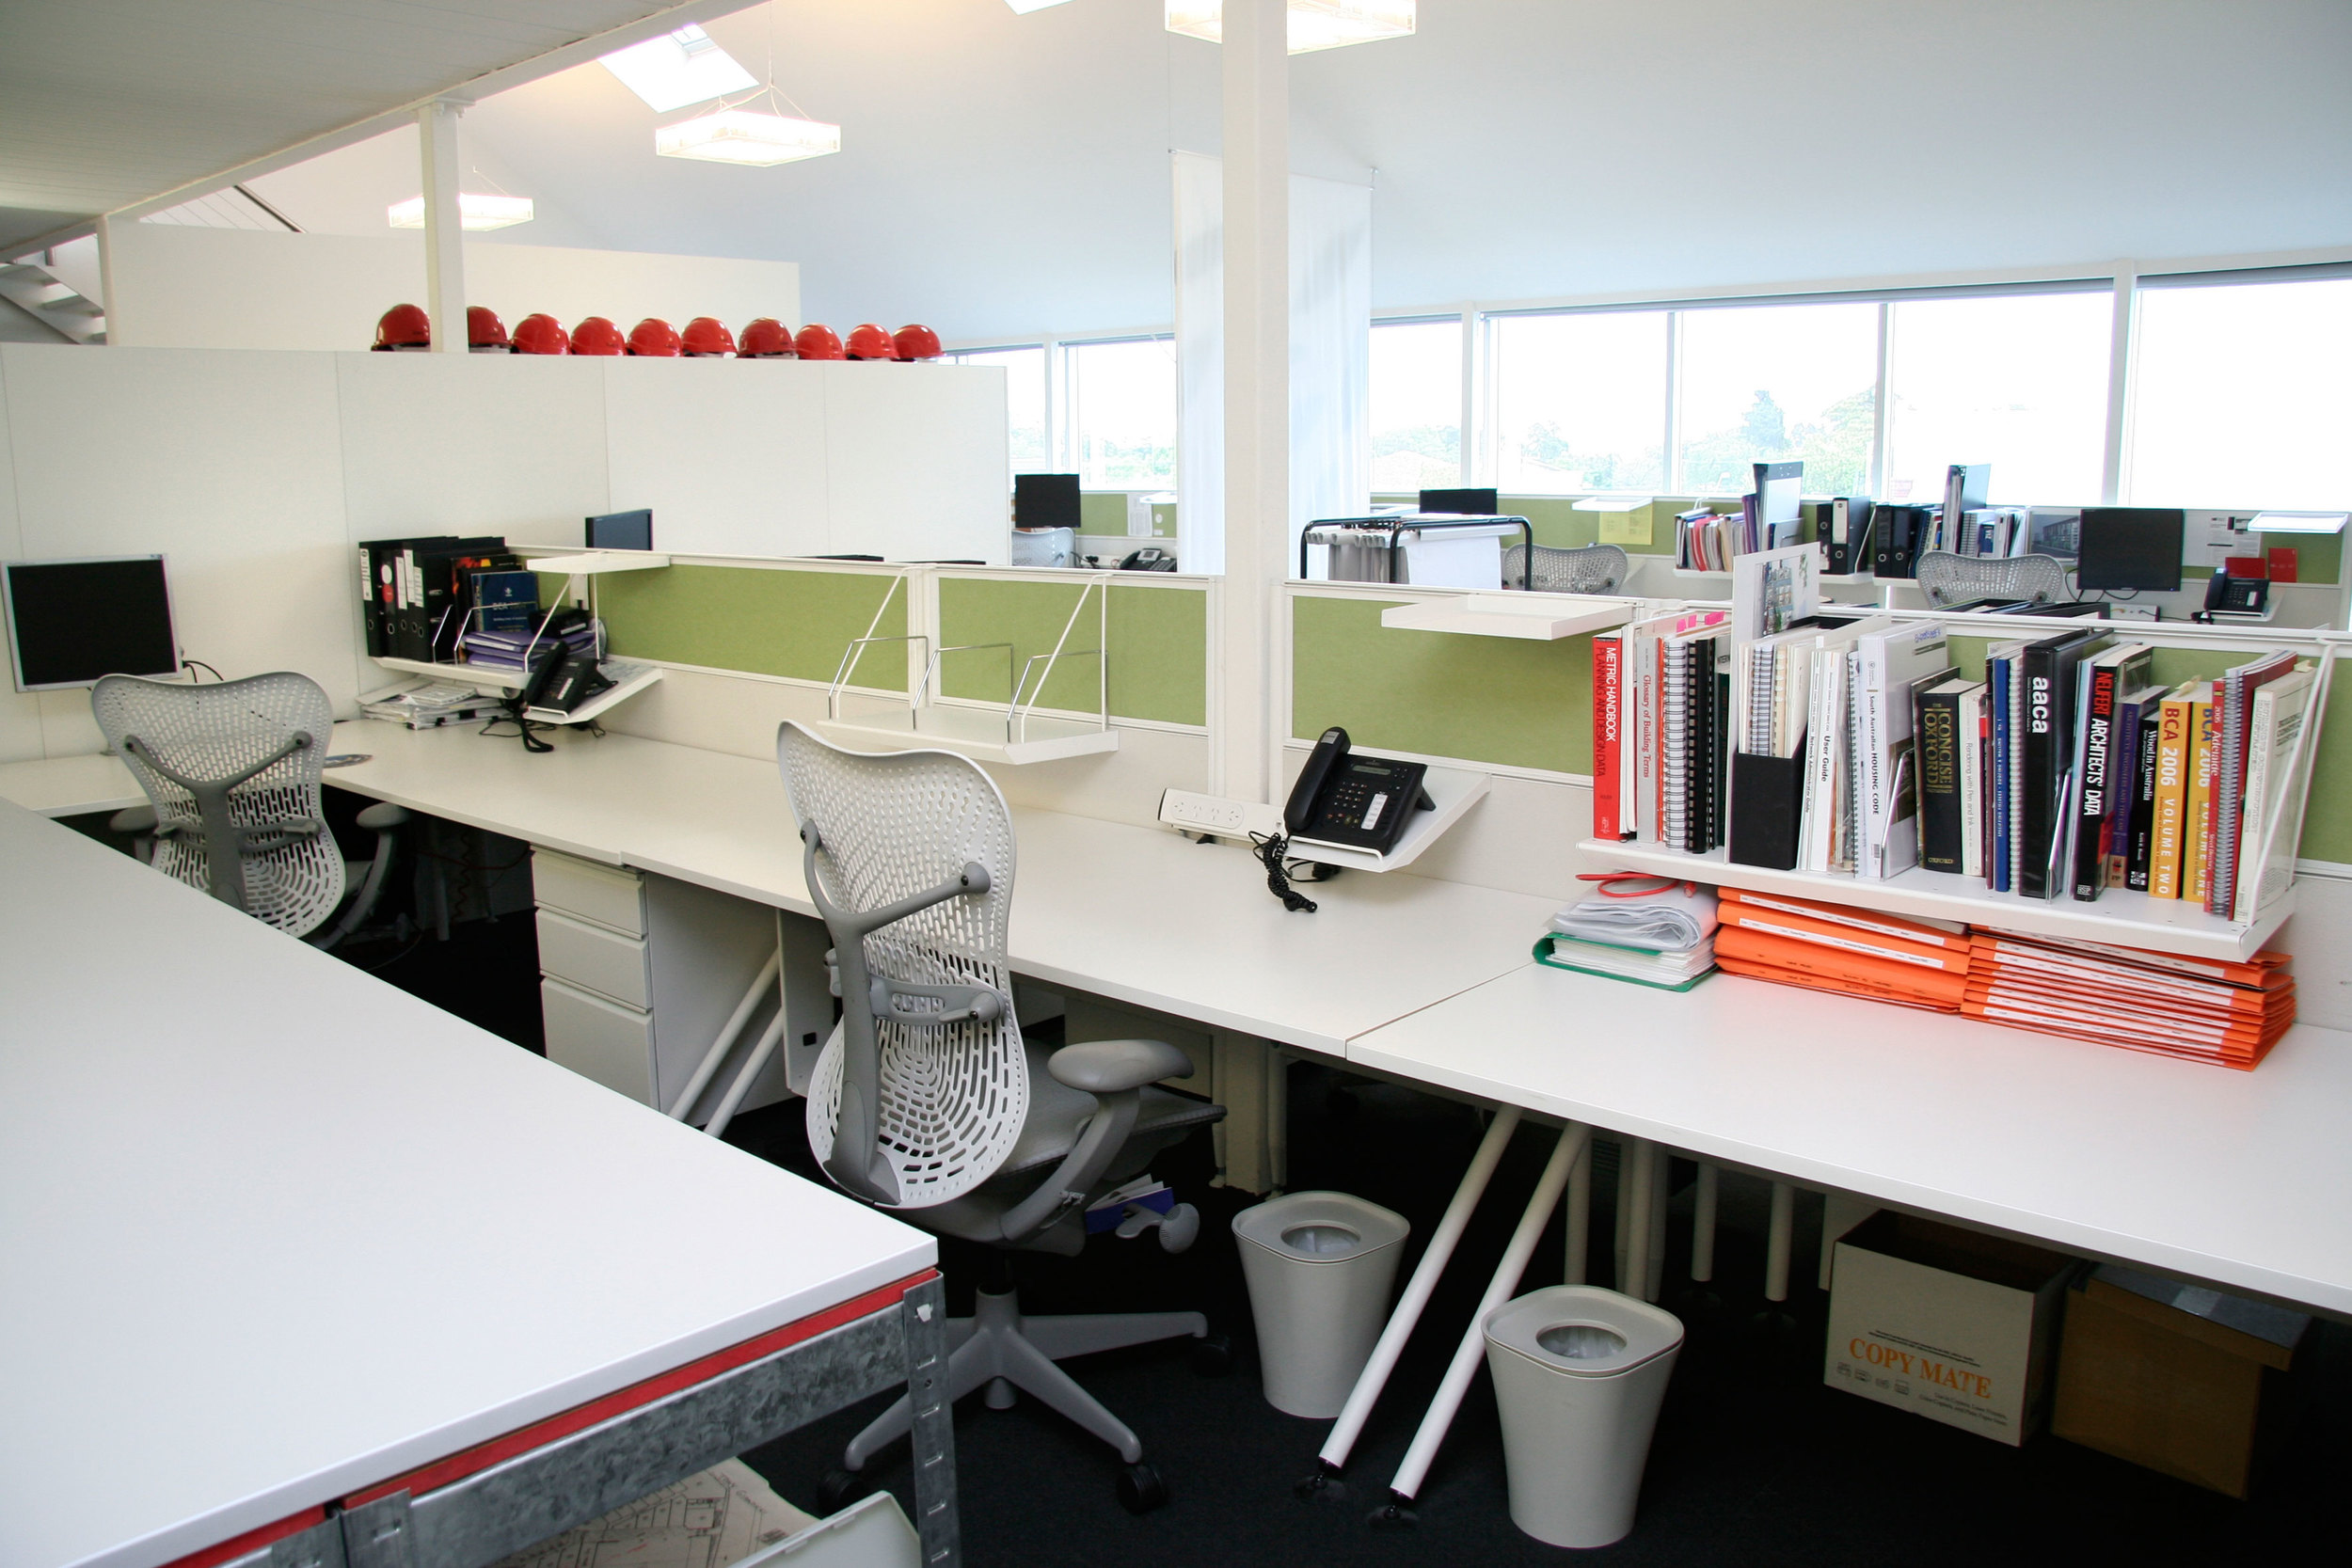 The flexible office plan promotes team communication